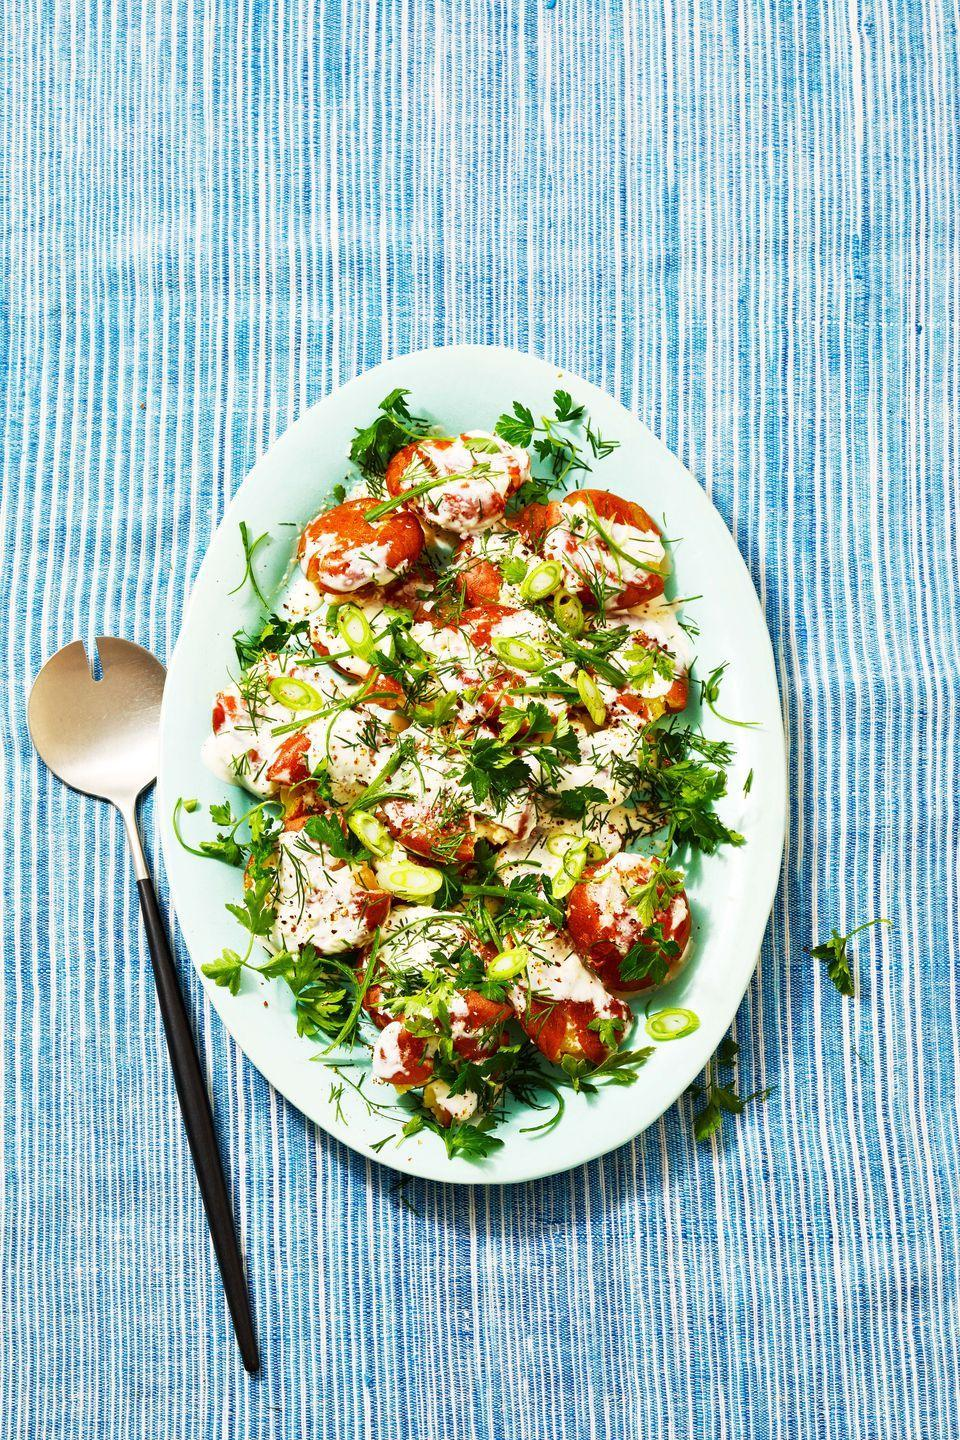 """<p>Bring this dreamy, creamy red potato salad to your next summer party and it might just outshine the main <a href=""""https://www.goodhousekeeping.com/food-recipes/g413/great-grilling-recipes/"""" rel=""""nofollow noopener"""" target=""""_blank"""" data-ylk=""""slk:grilling recipes"""" class=""""link rapid-noclick-resp"""">grilling recipes</a> on the table.</p><p><a href=""""https://www.goodhousekeeping.com/food-recipes/a36701641/red-potato-salad-recipe/"""" rel=""""nofollow noopener"""" target=""""_blank"""" data-ylk=""""slk:Get the recipe for Herby Red Potato Salad »"""" class=""""link rapid-noclick-resp""""><em>Get the recipe for Herby Red Potato Salad »</em></a></p>"""